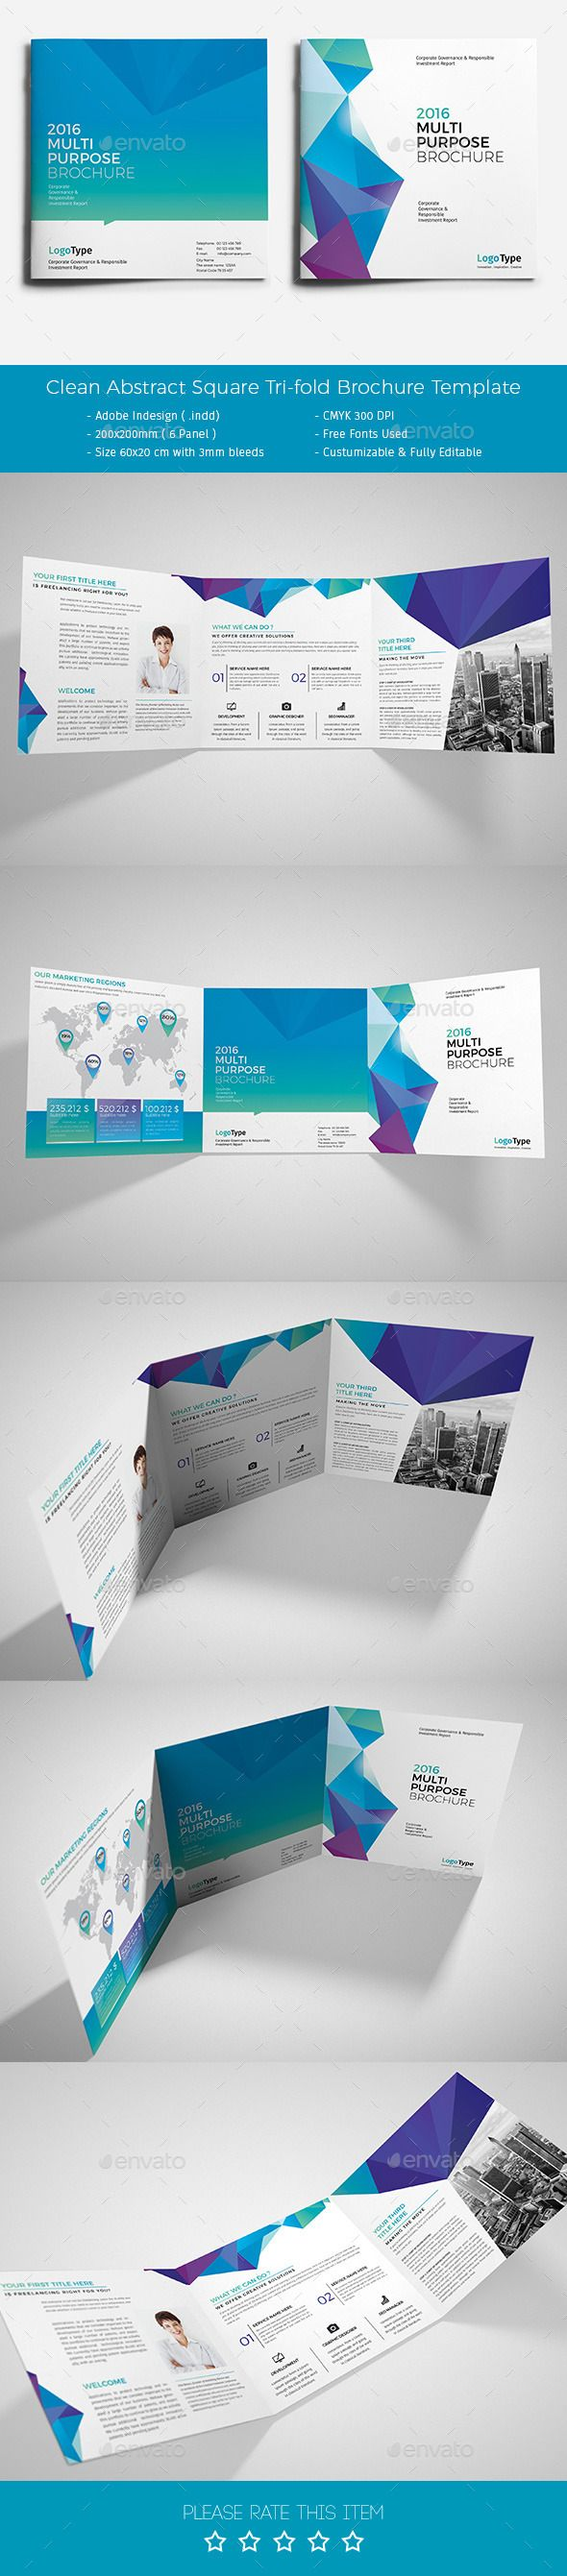 Clean abstract square tri fold brochure corporate brochure clean abstract square tri fold brochure corporate brochure template indesign indd download here saigontimesfo